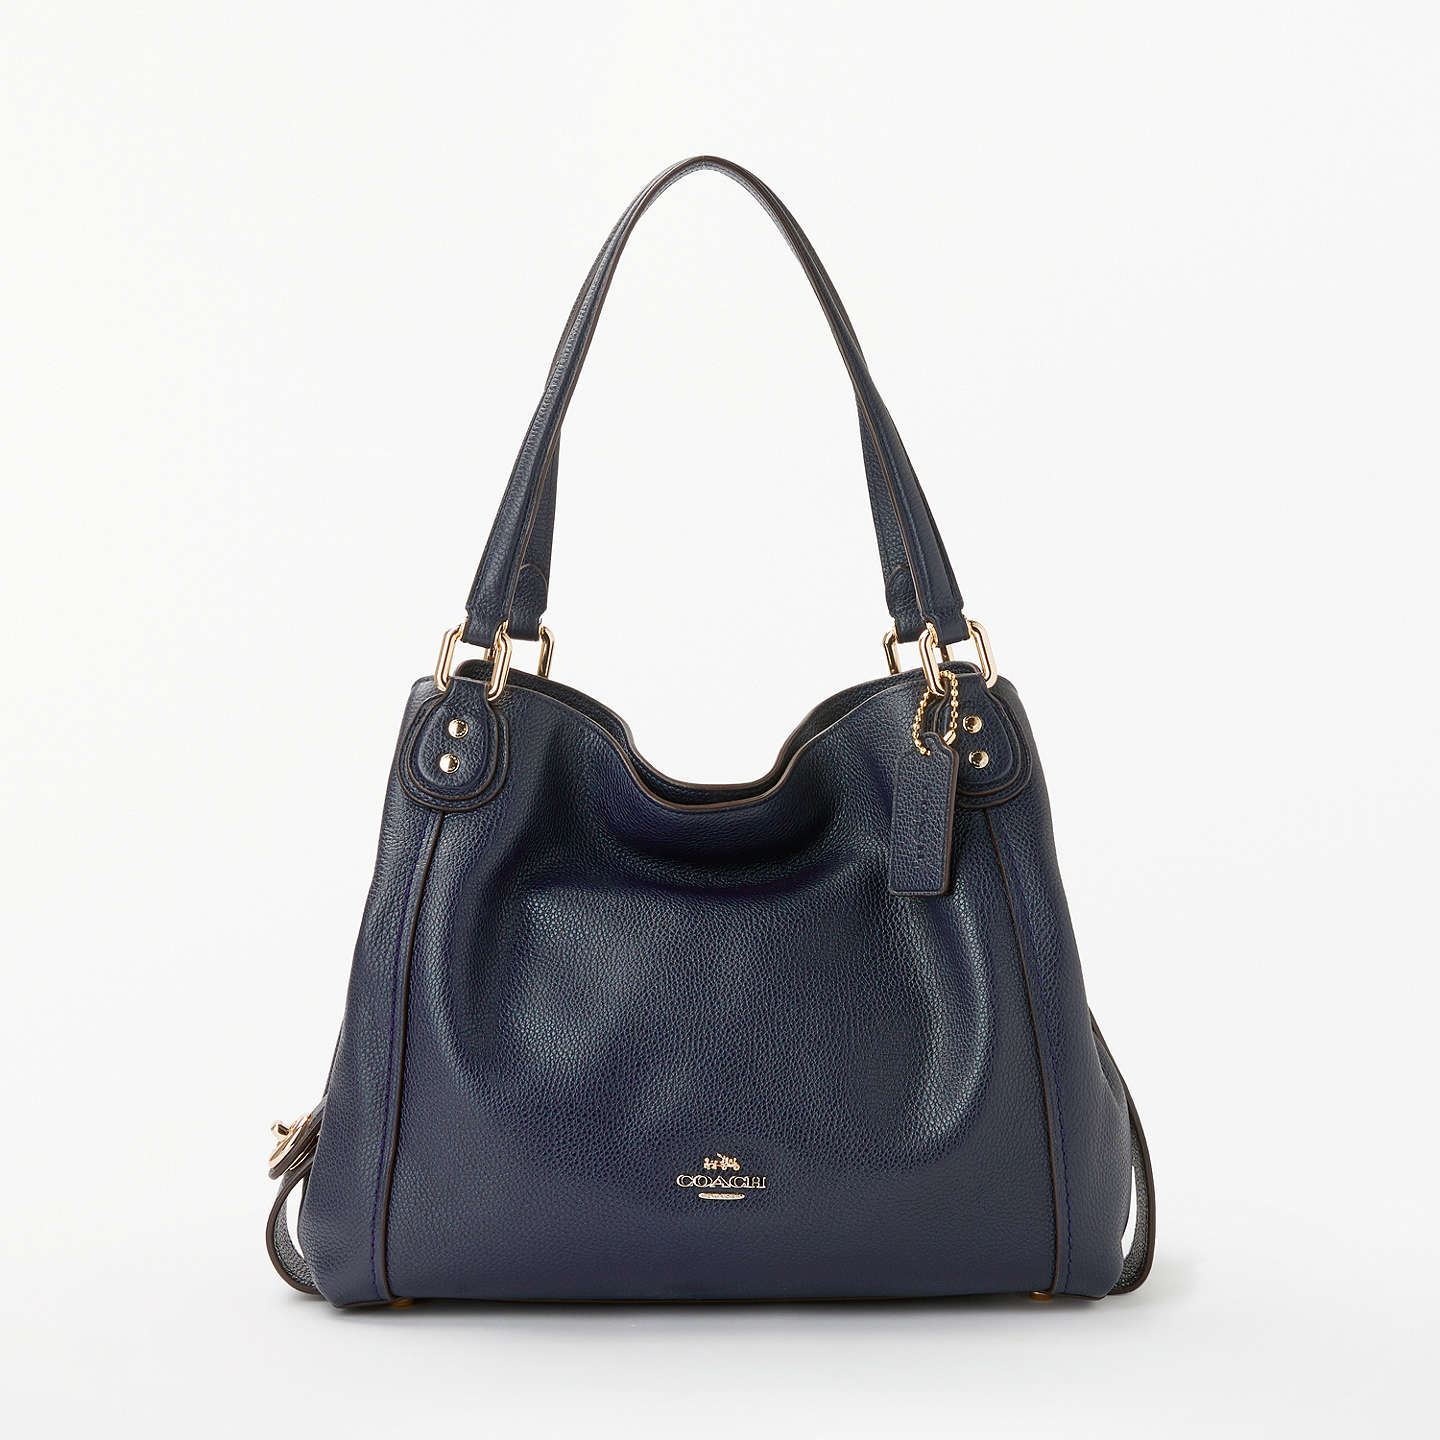 Coach Edie 28 Leather Shoulder Bag, Navy by Coach